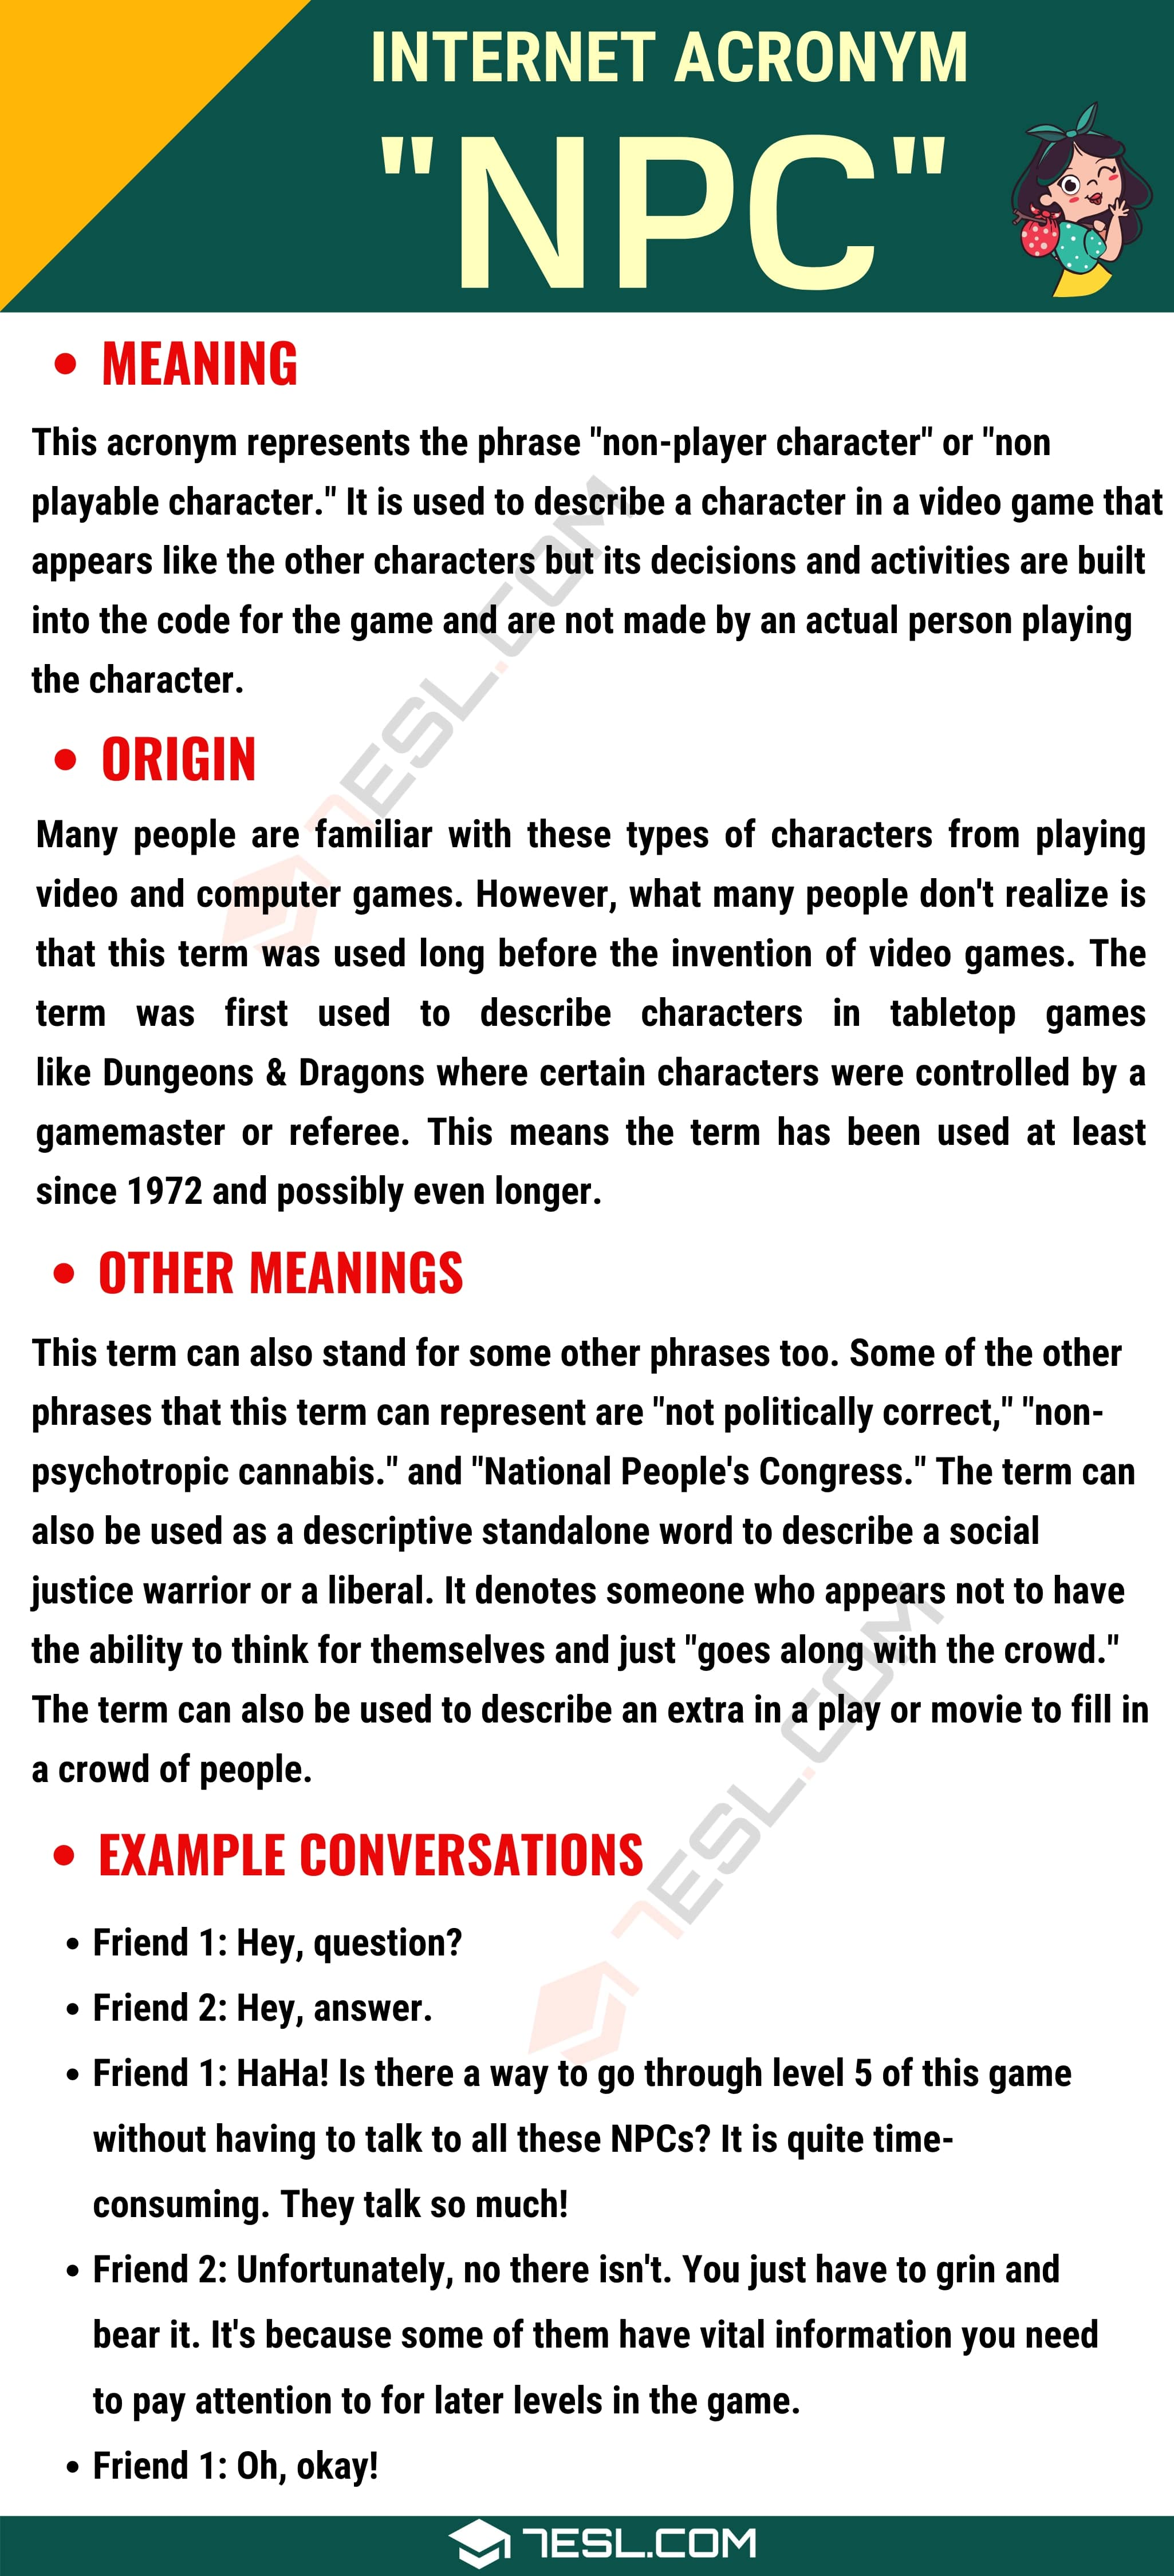 NPC Meaning: Do You Know What this Interesting Acronym Stands For?